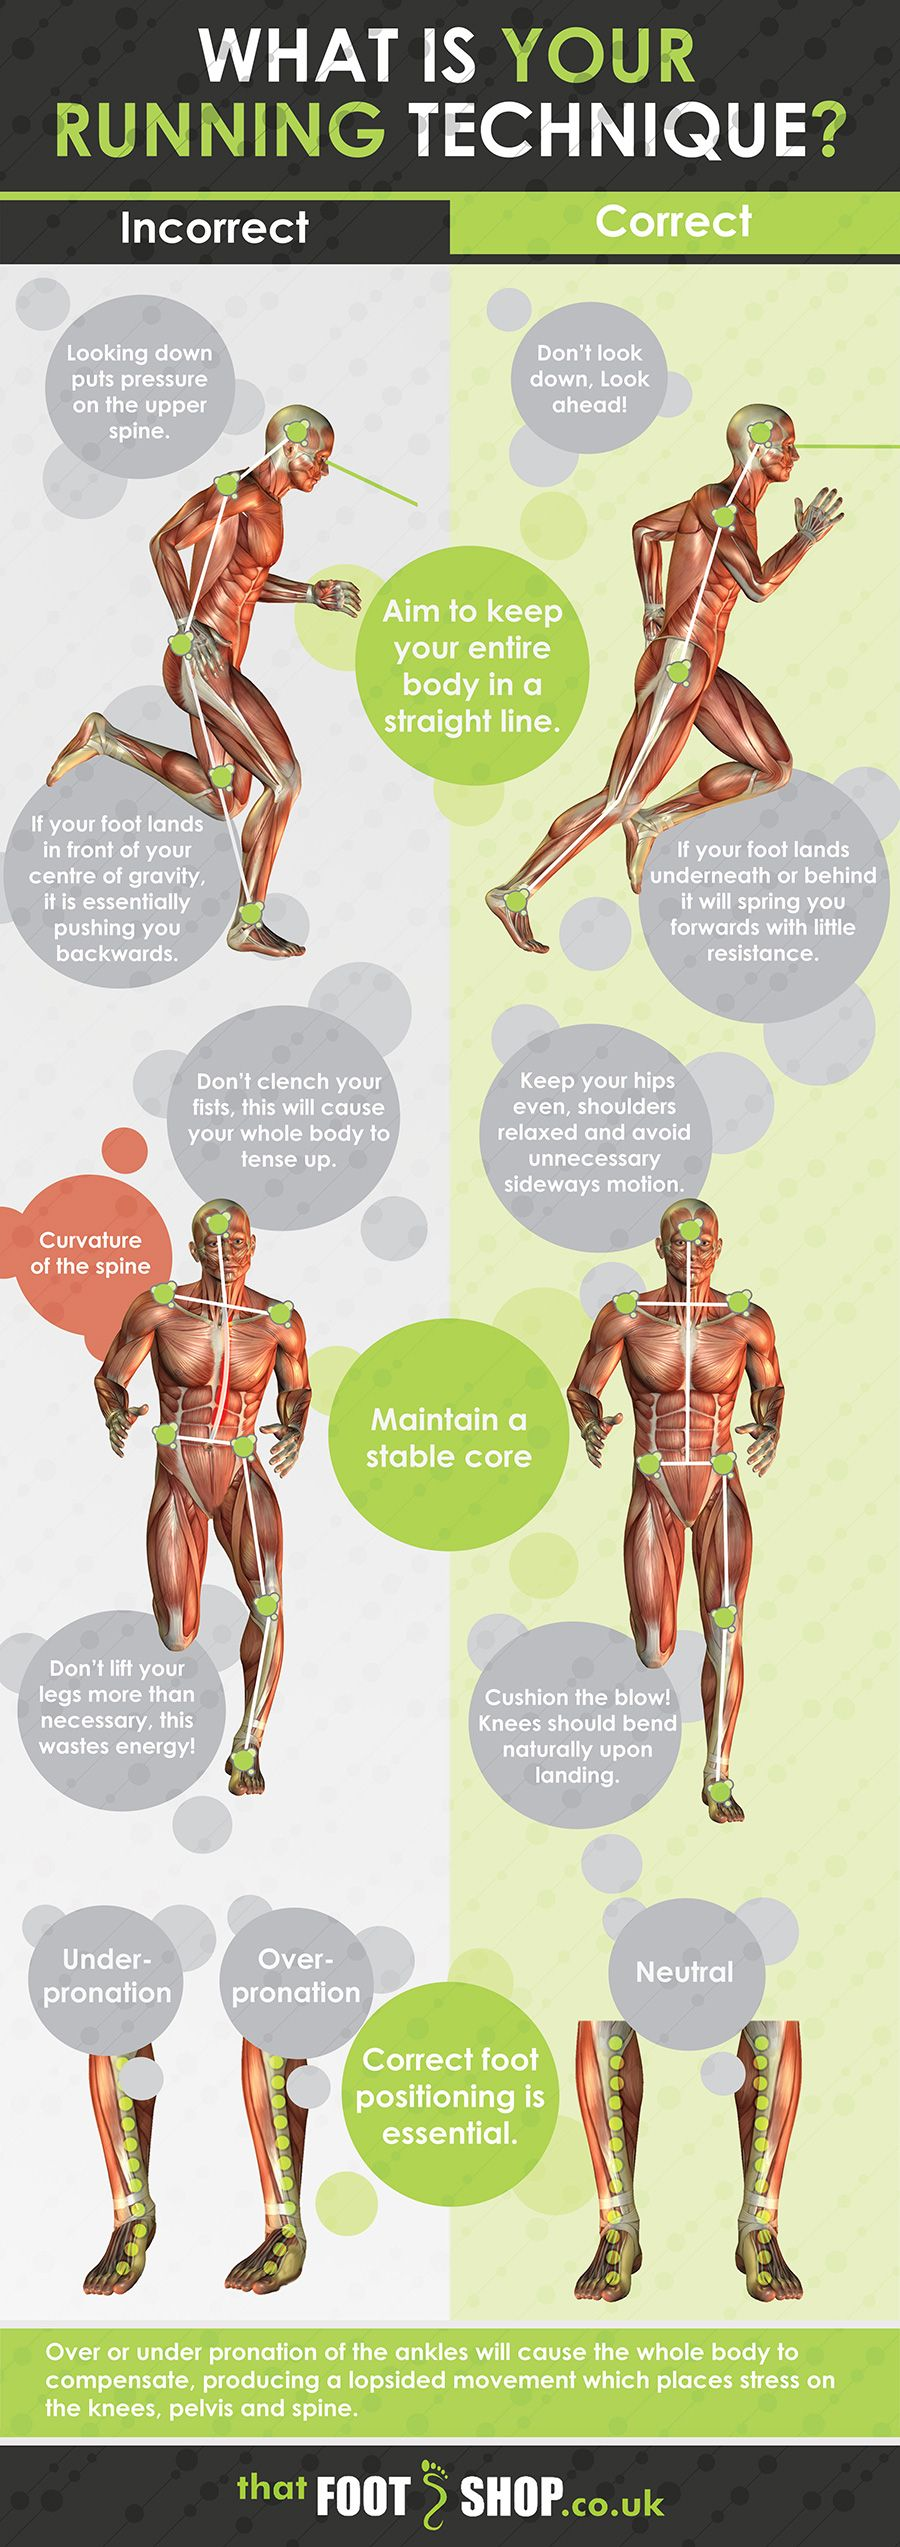 running a lot faster would rely on your energy levels, physical ...